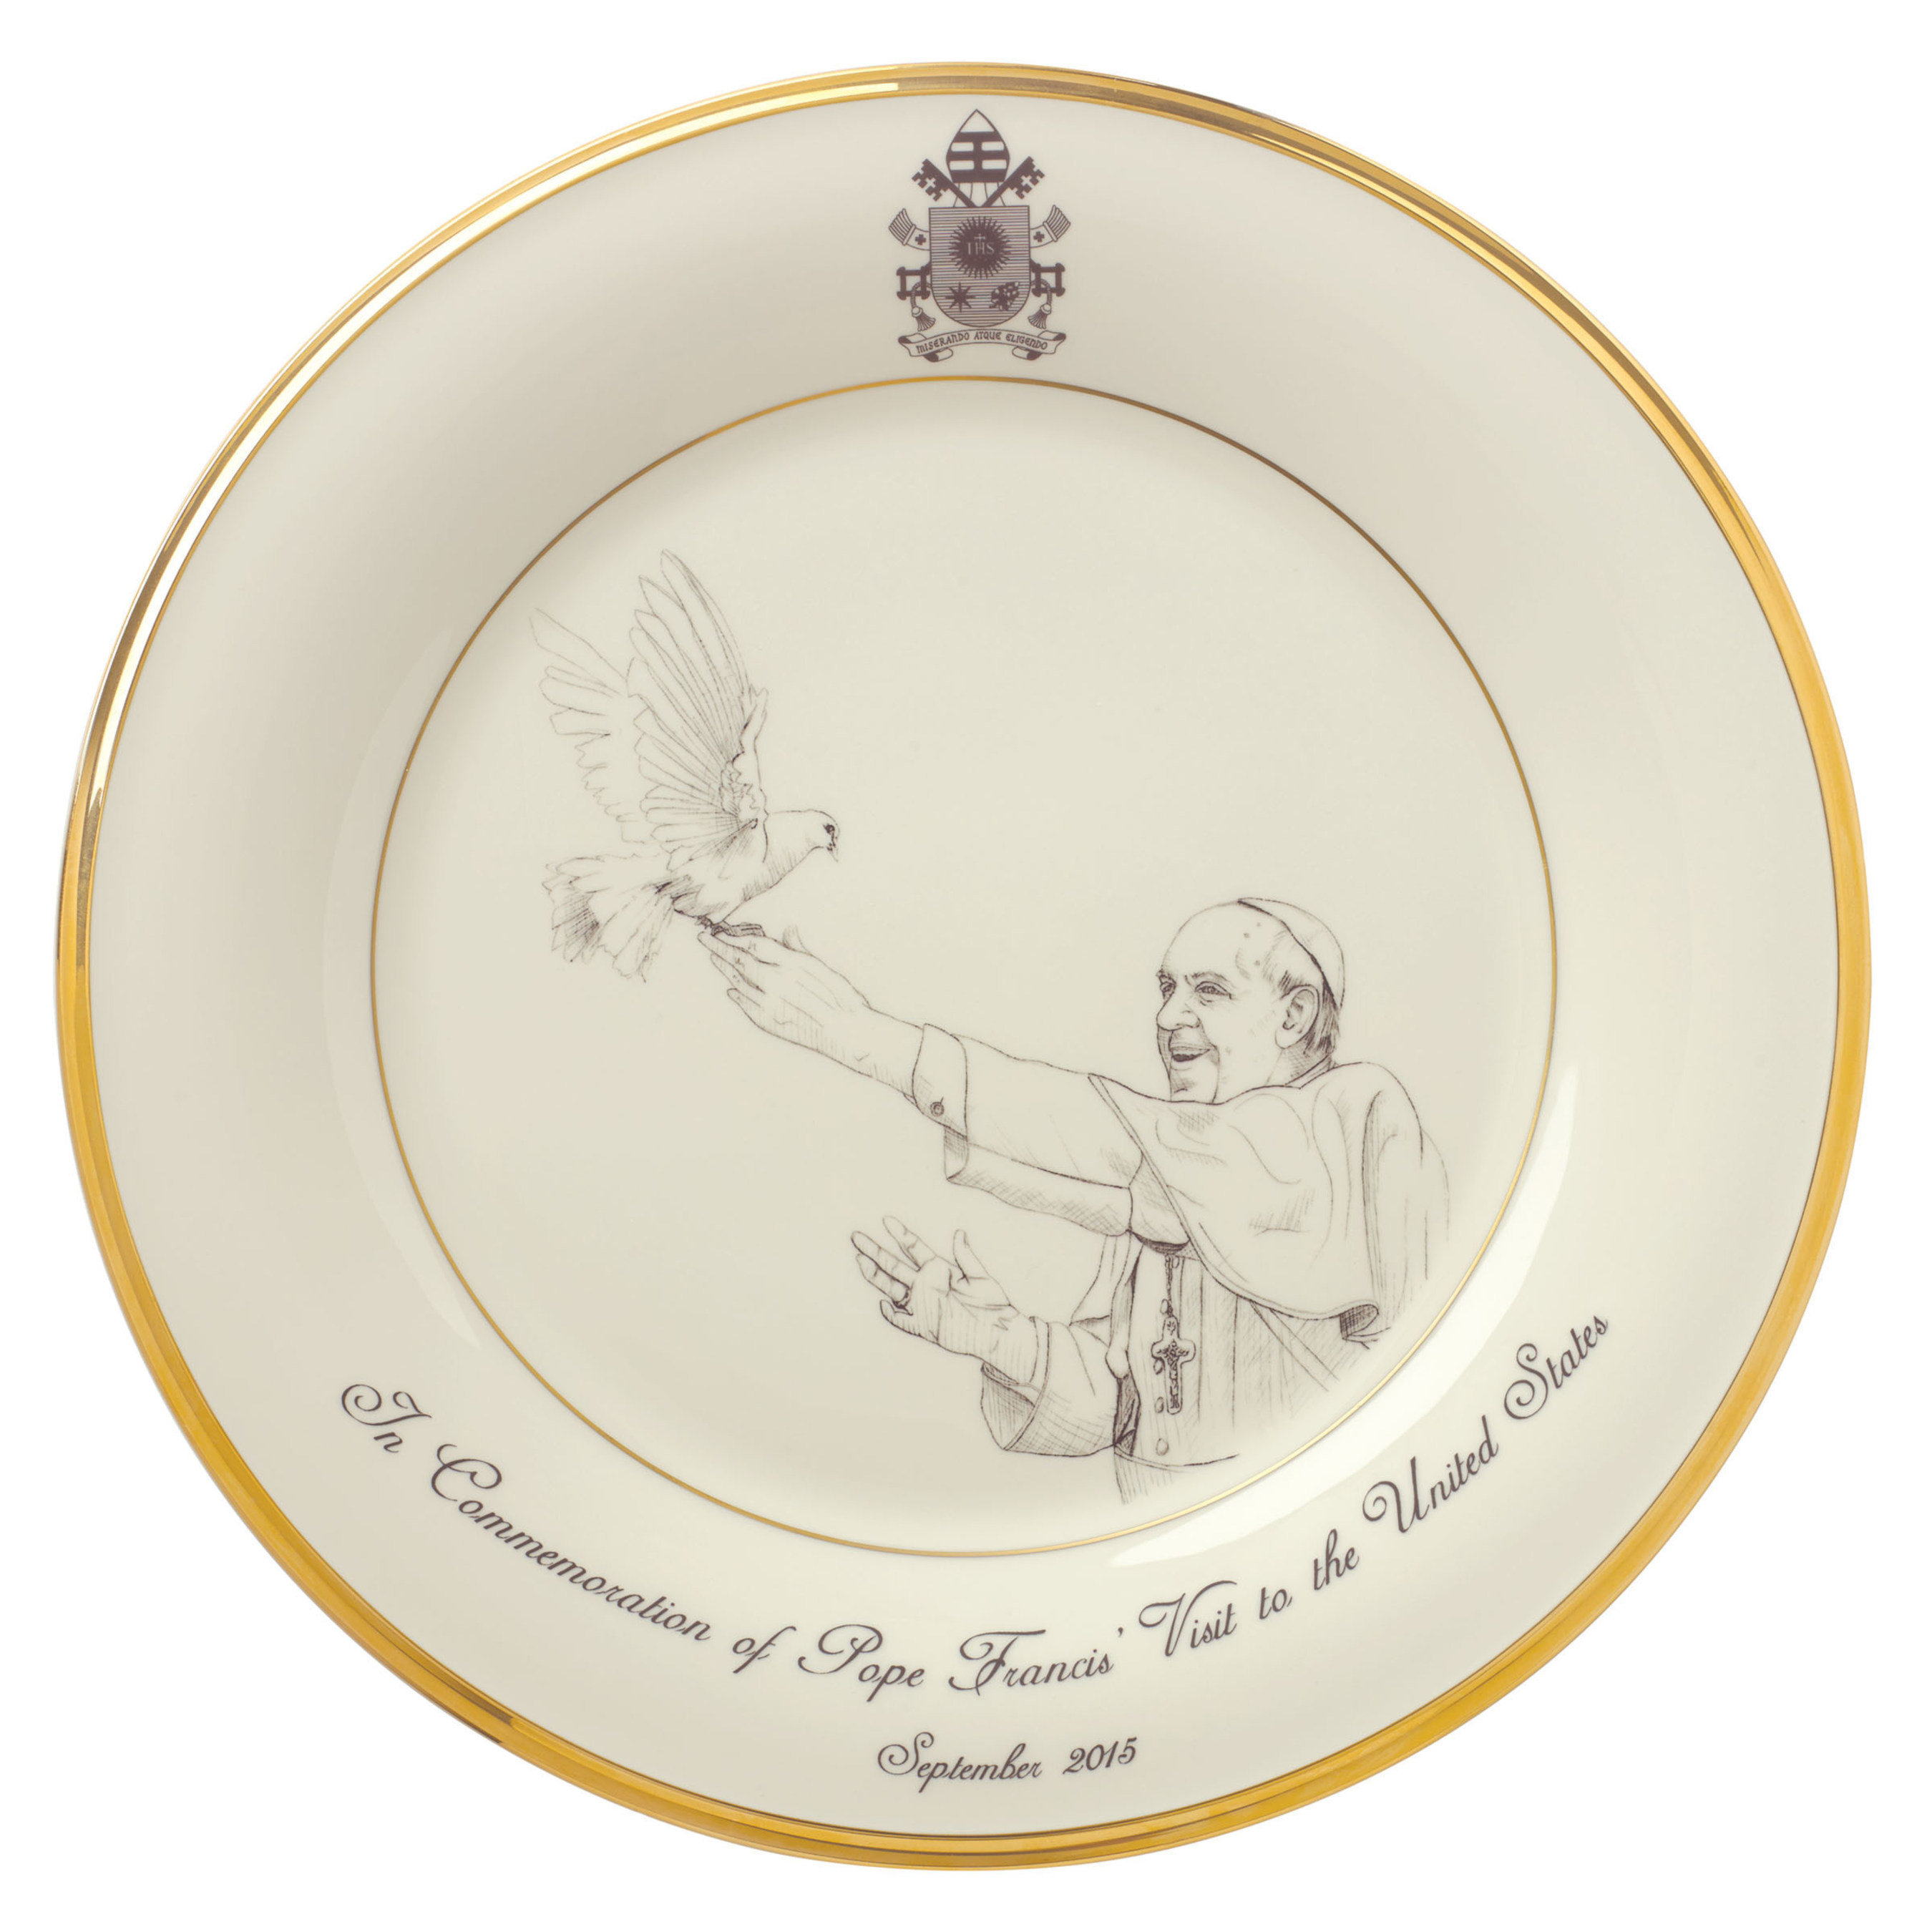 Lenox To Produce Ivory And Gold Fine Bone China Commemorative Gifts For Pope Francis' Historic Visit To The USA